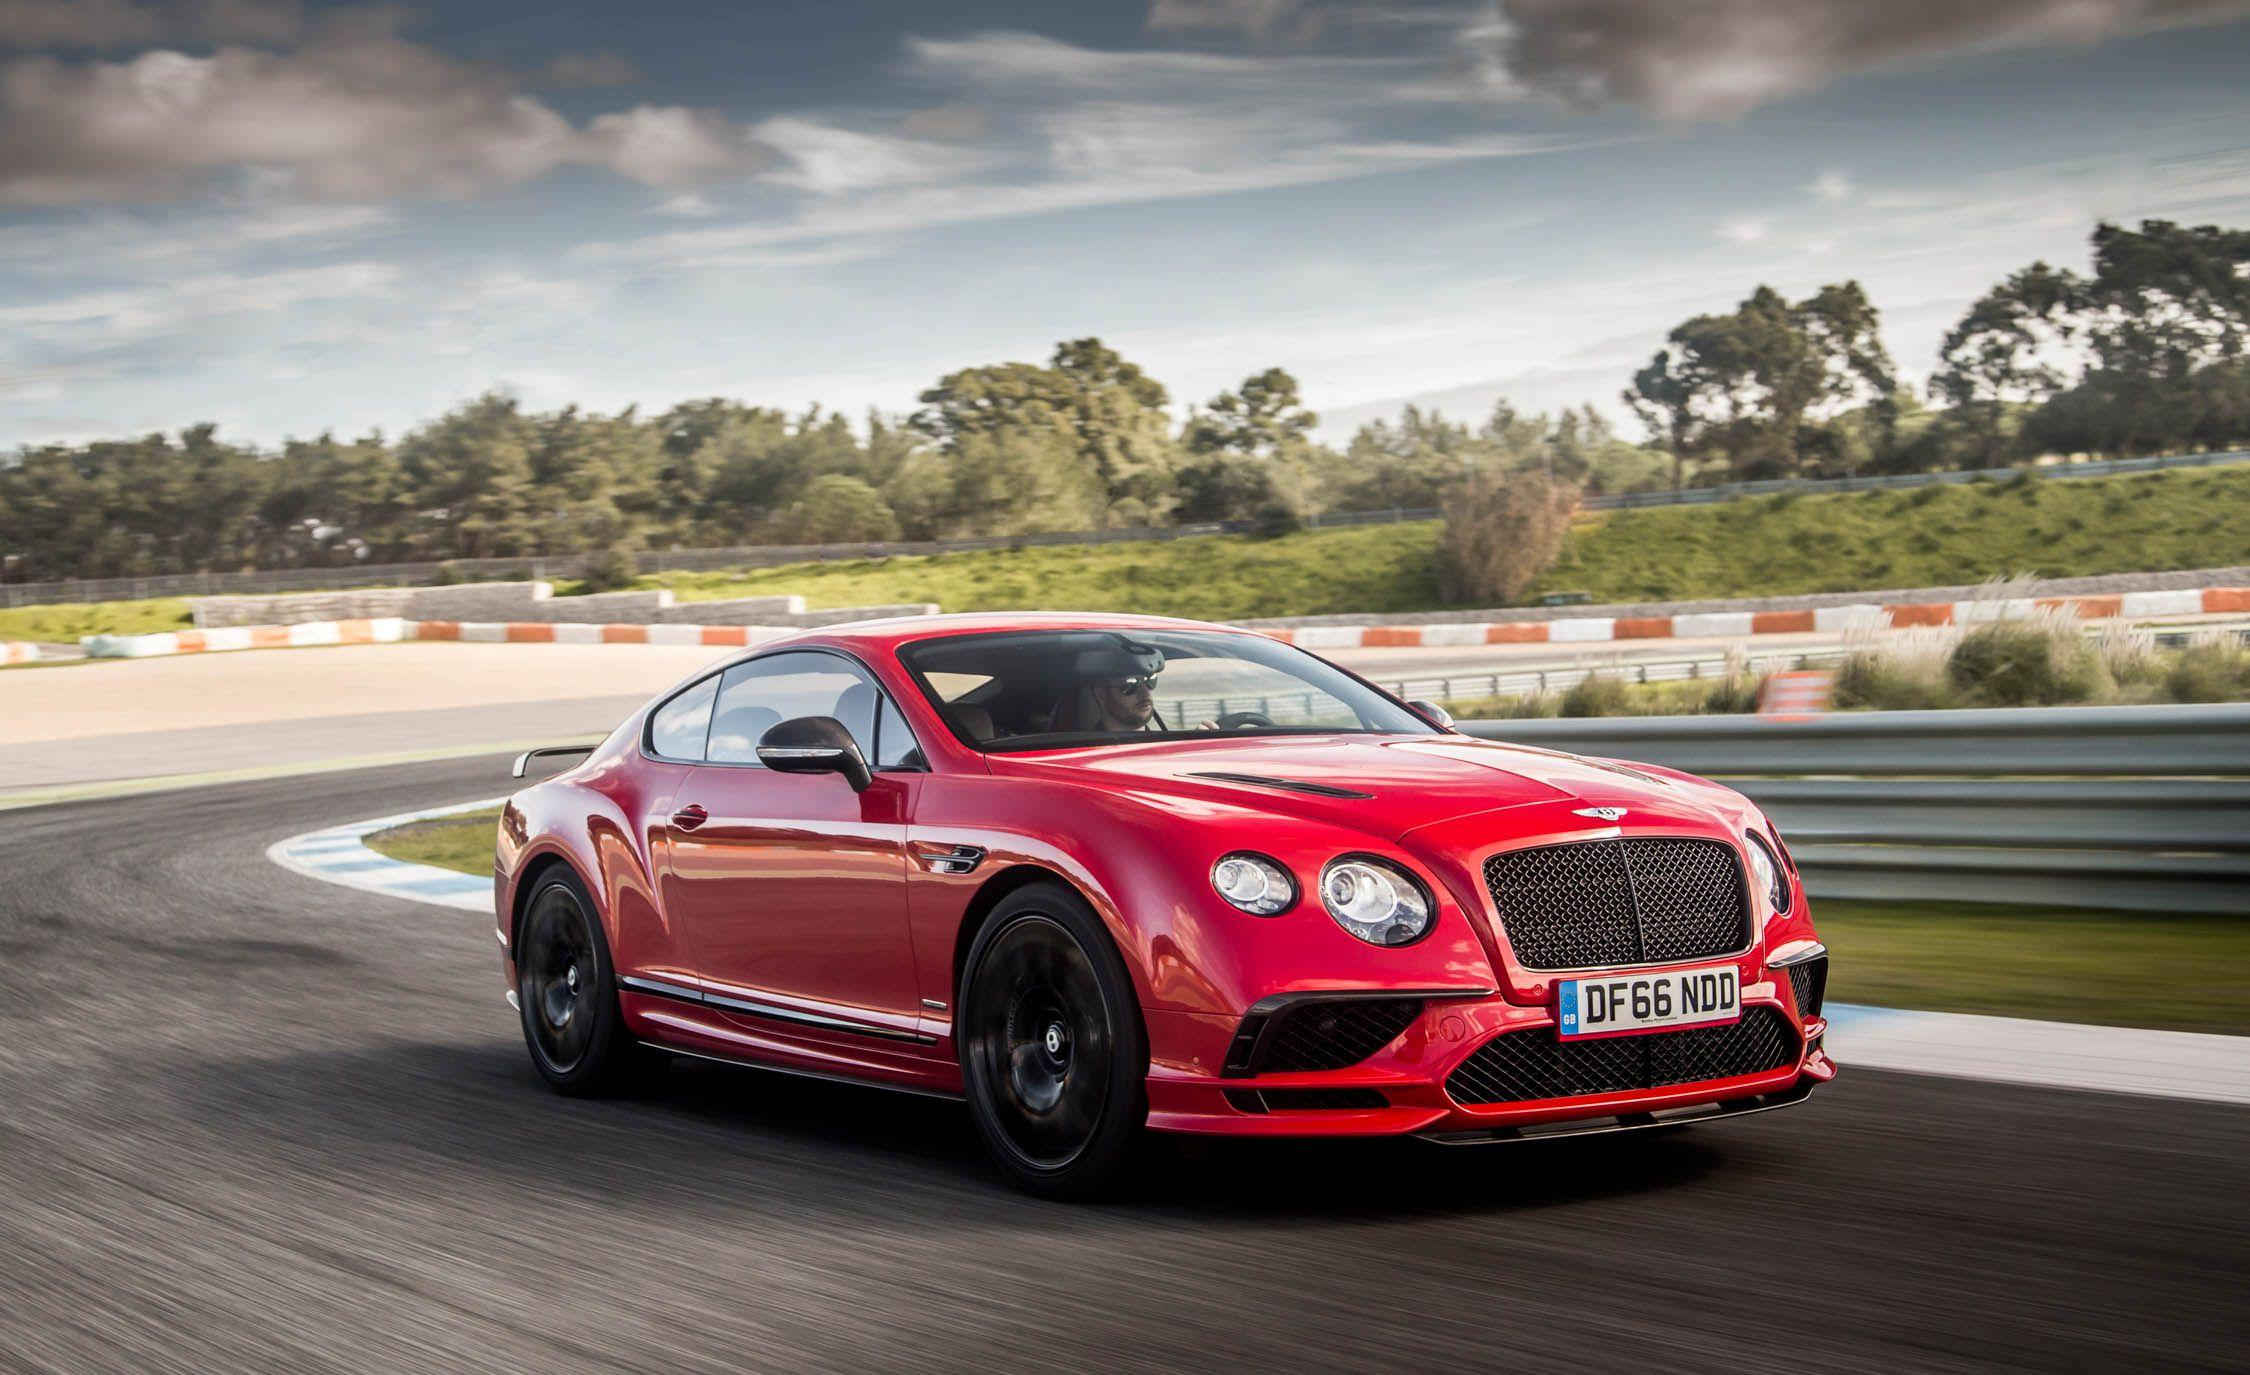 2018 Bentley Continental GT Supersports Wallpapers